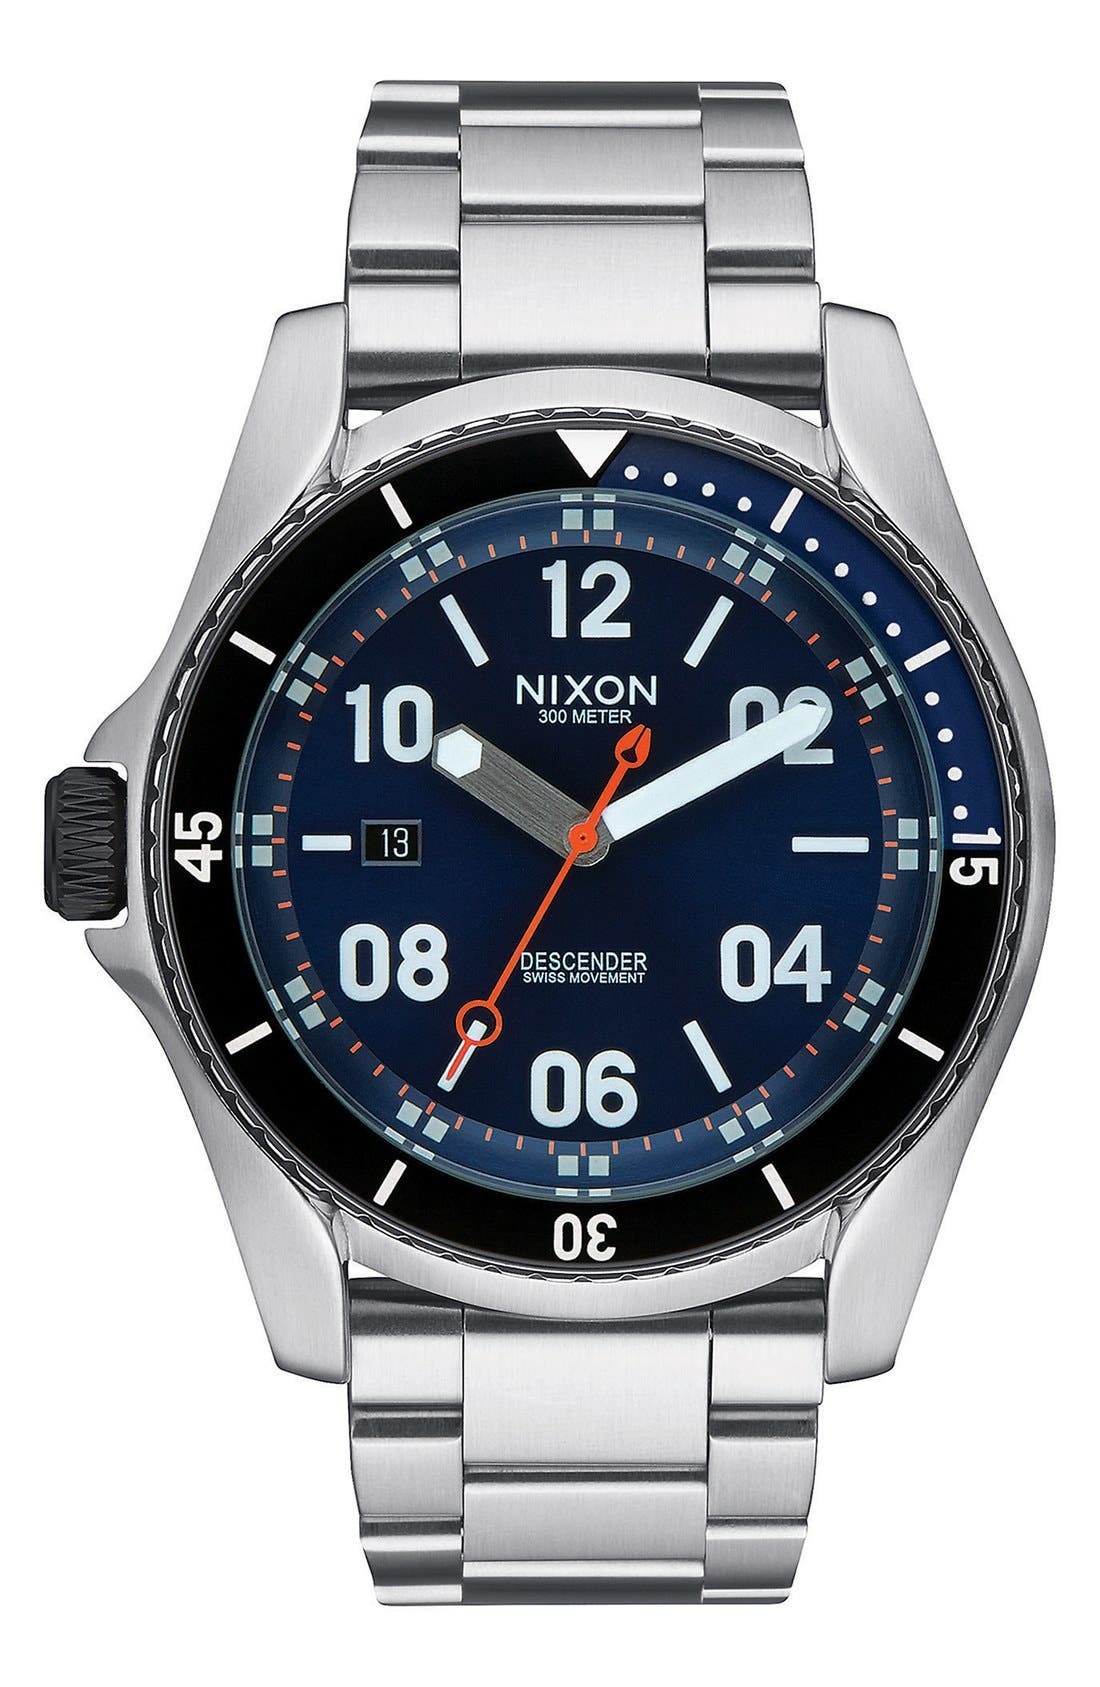 NIXON 'Descender' Bracelet Watch, 45mm